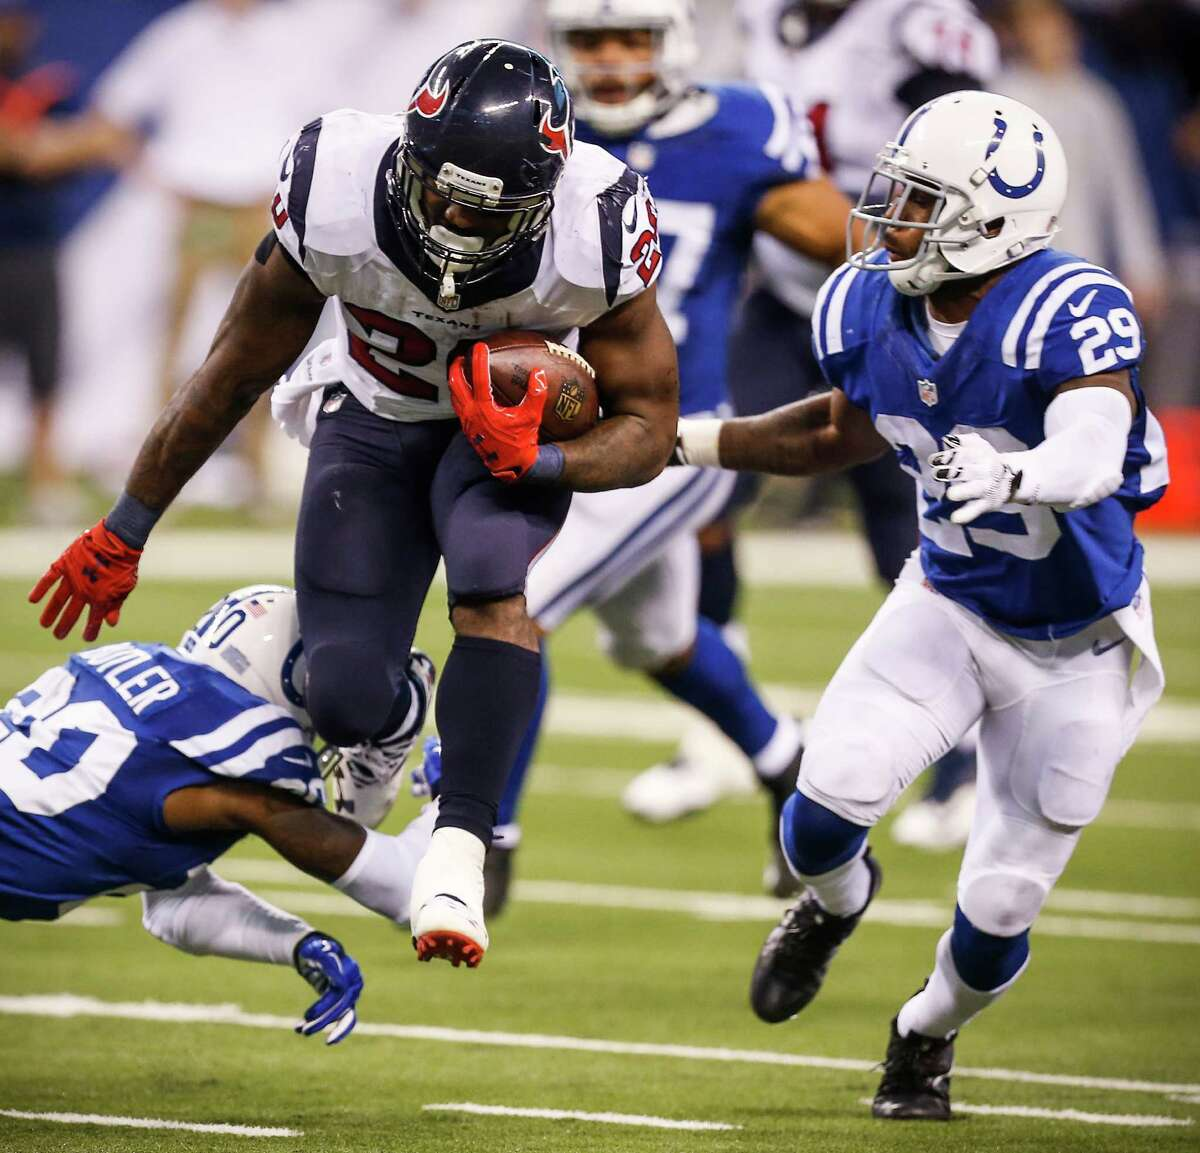 Houston Texans running back Lamar Miller (26) leaps past Indianapolis Colts cornerback Darius Butler (20) and strong safety Mike Adams (29) during the fourth quarter of an NFL football game at Lucas Oil Stadium on Sunday, Dec. 11, 2016, in Indianapolis.